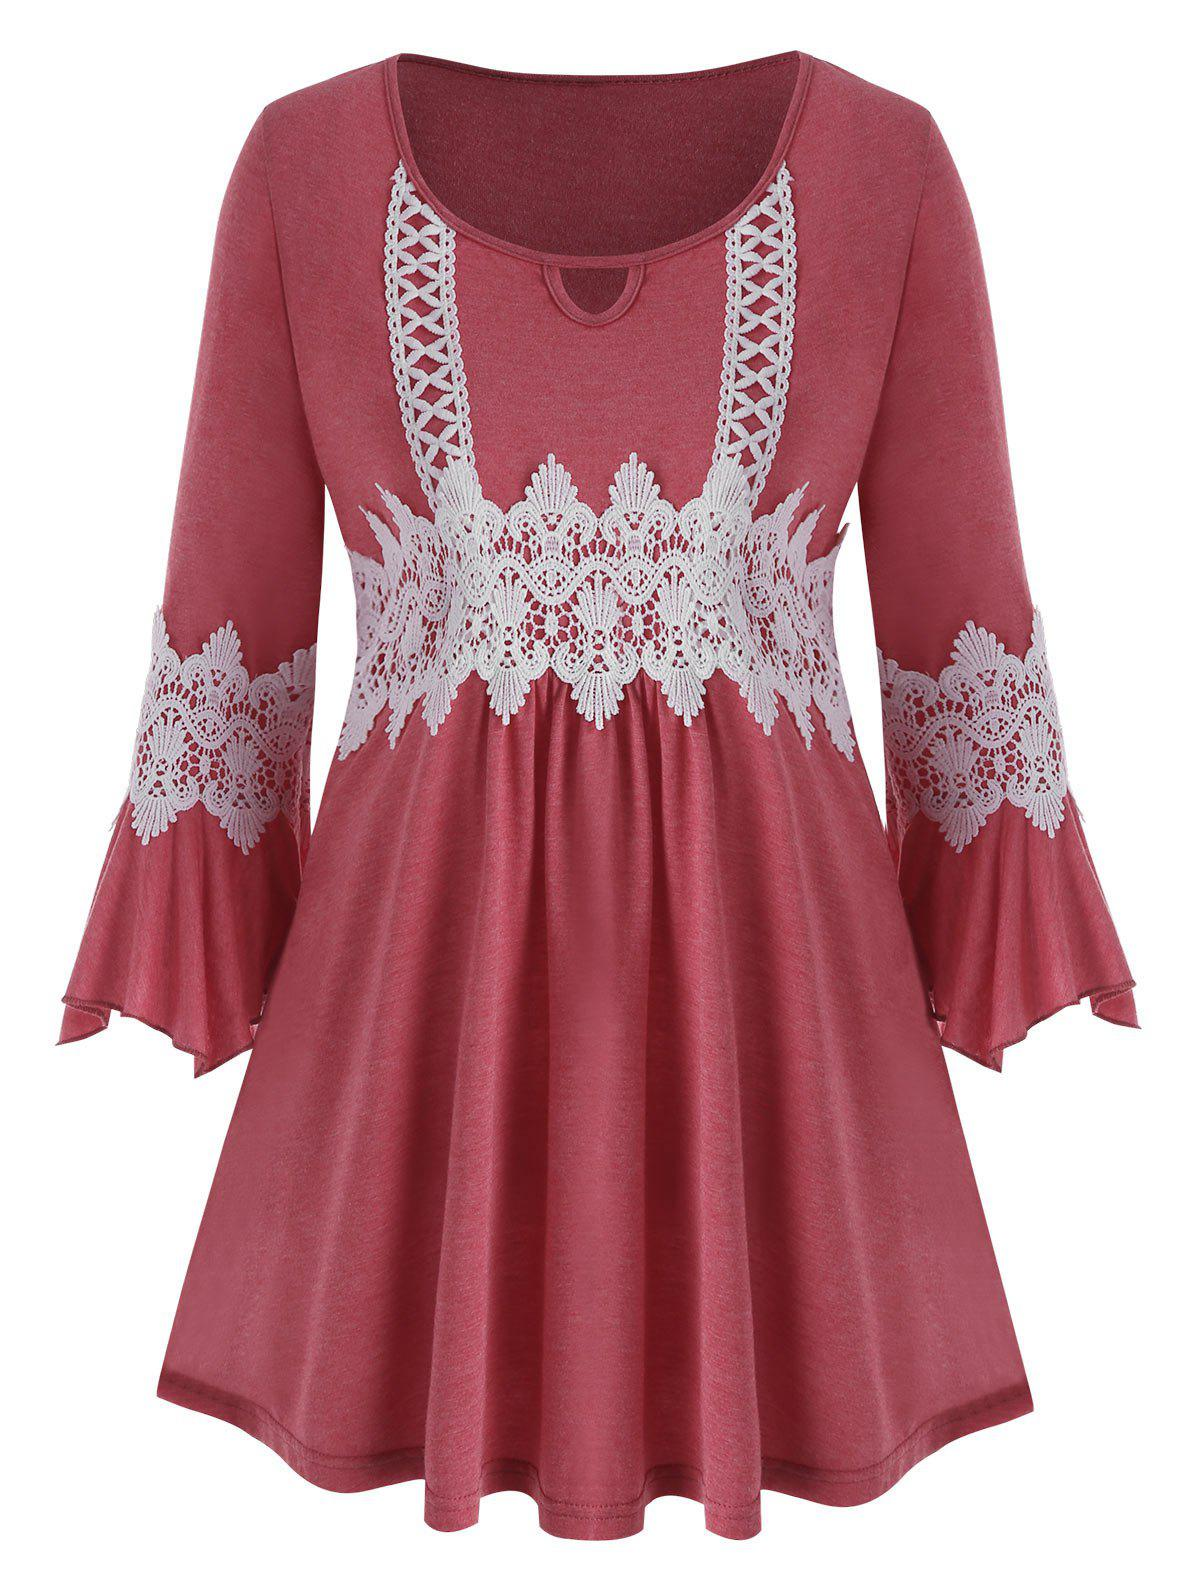 Plus Size Contrast Lace Bell Sleeve Tee - RED L